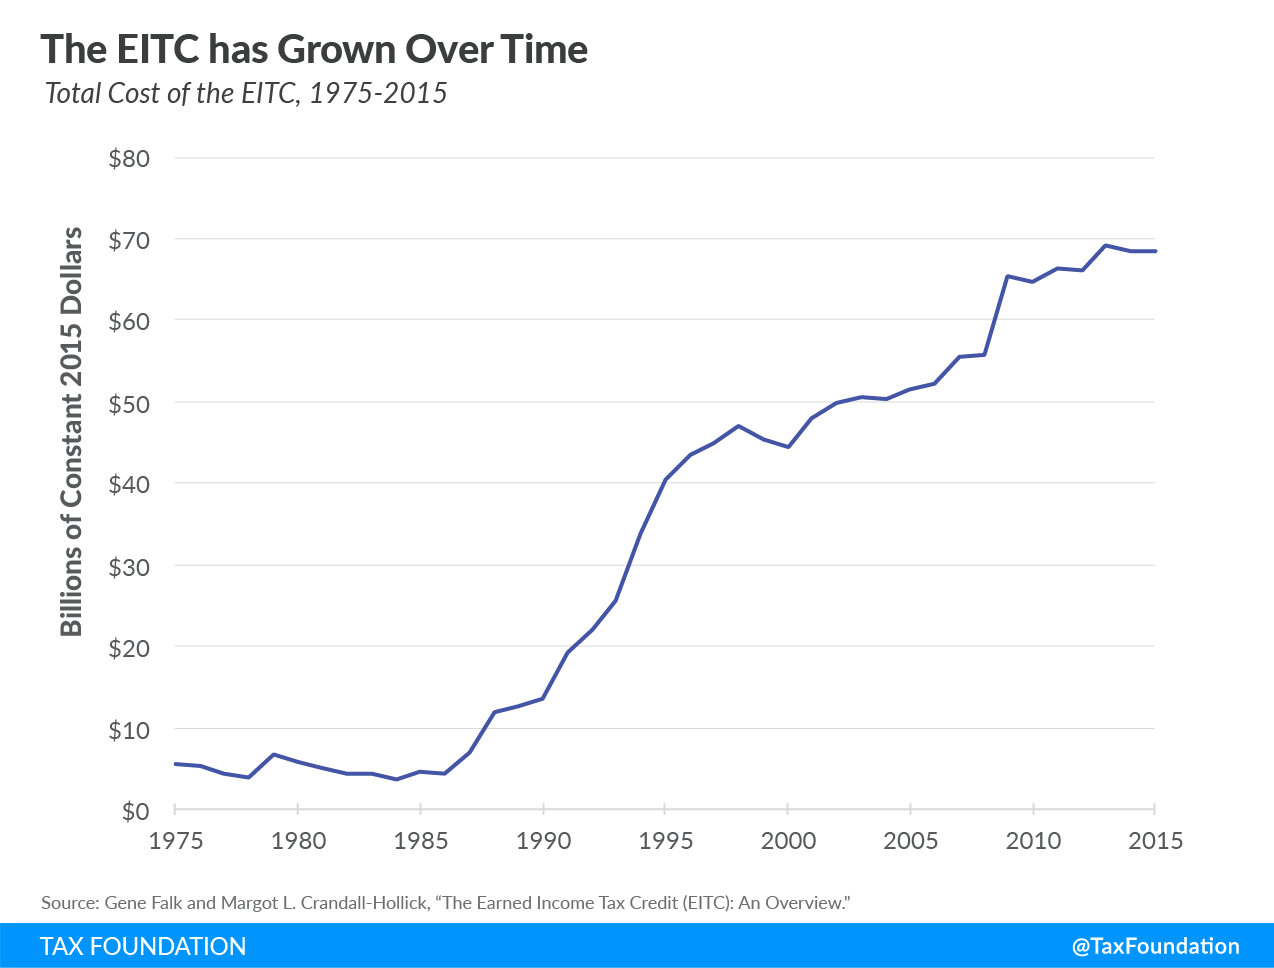 The EITC has grown over time, earned income tax credit